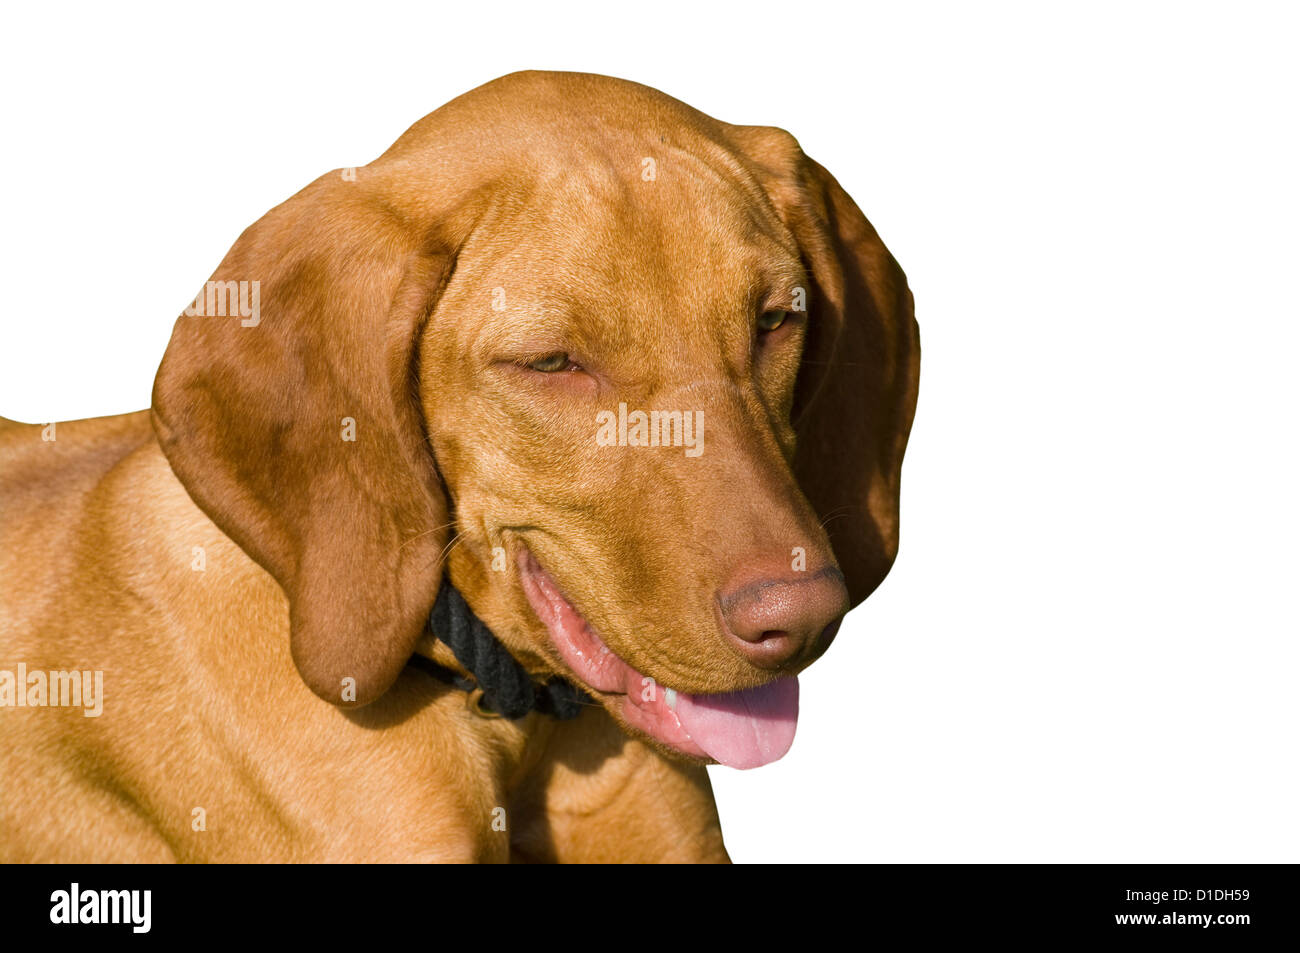 Brown Dog Panting with its tongue out - Stock Image